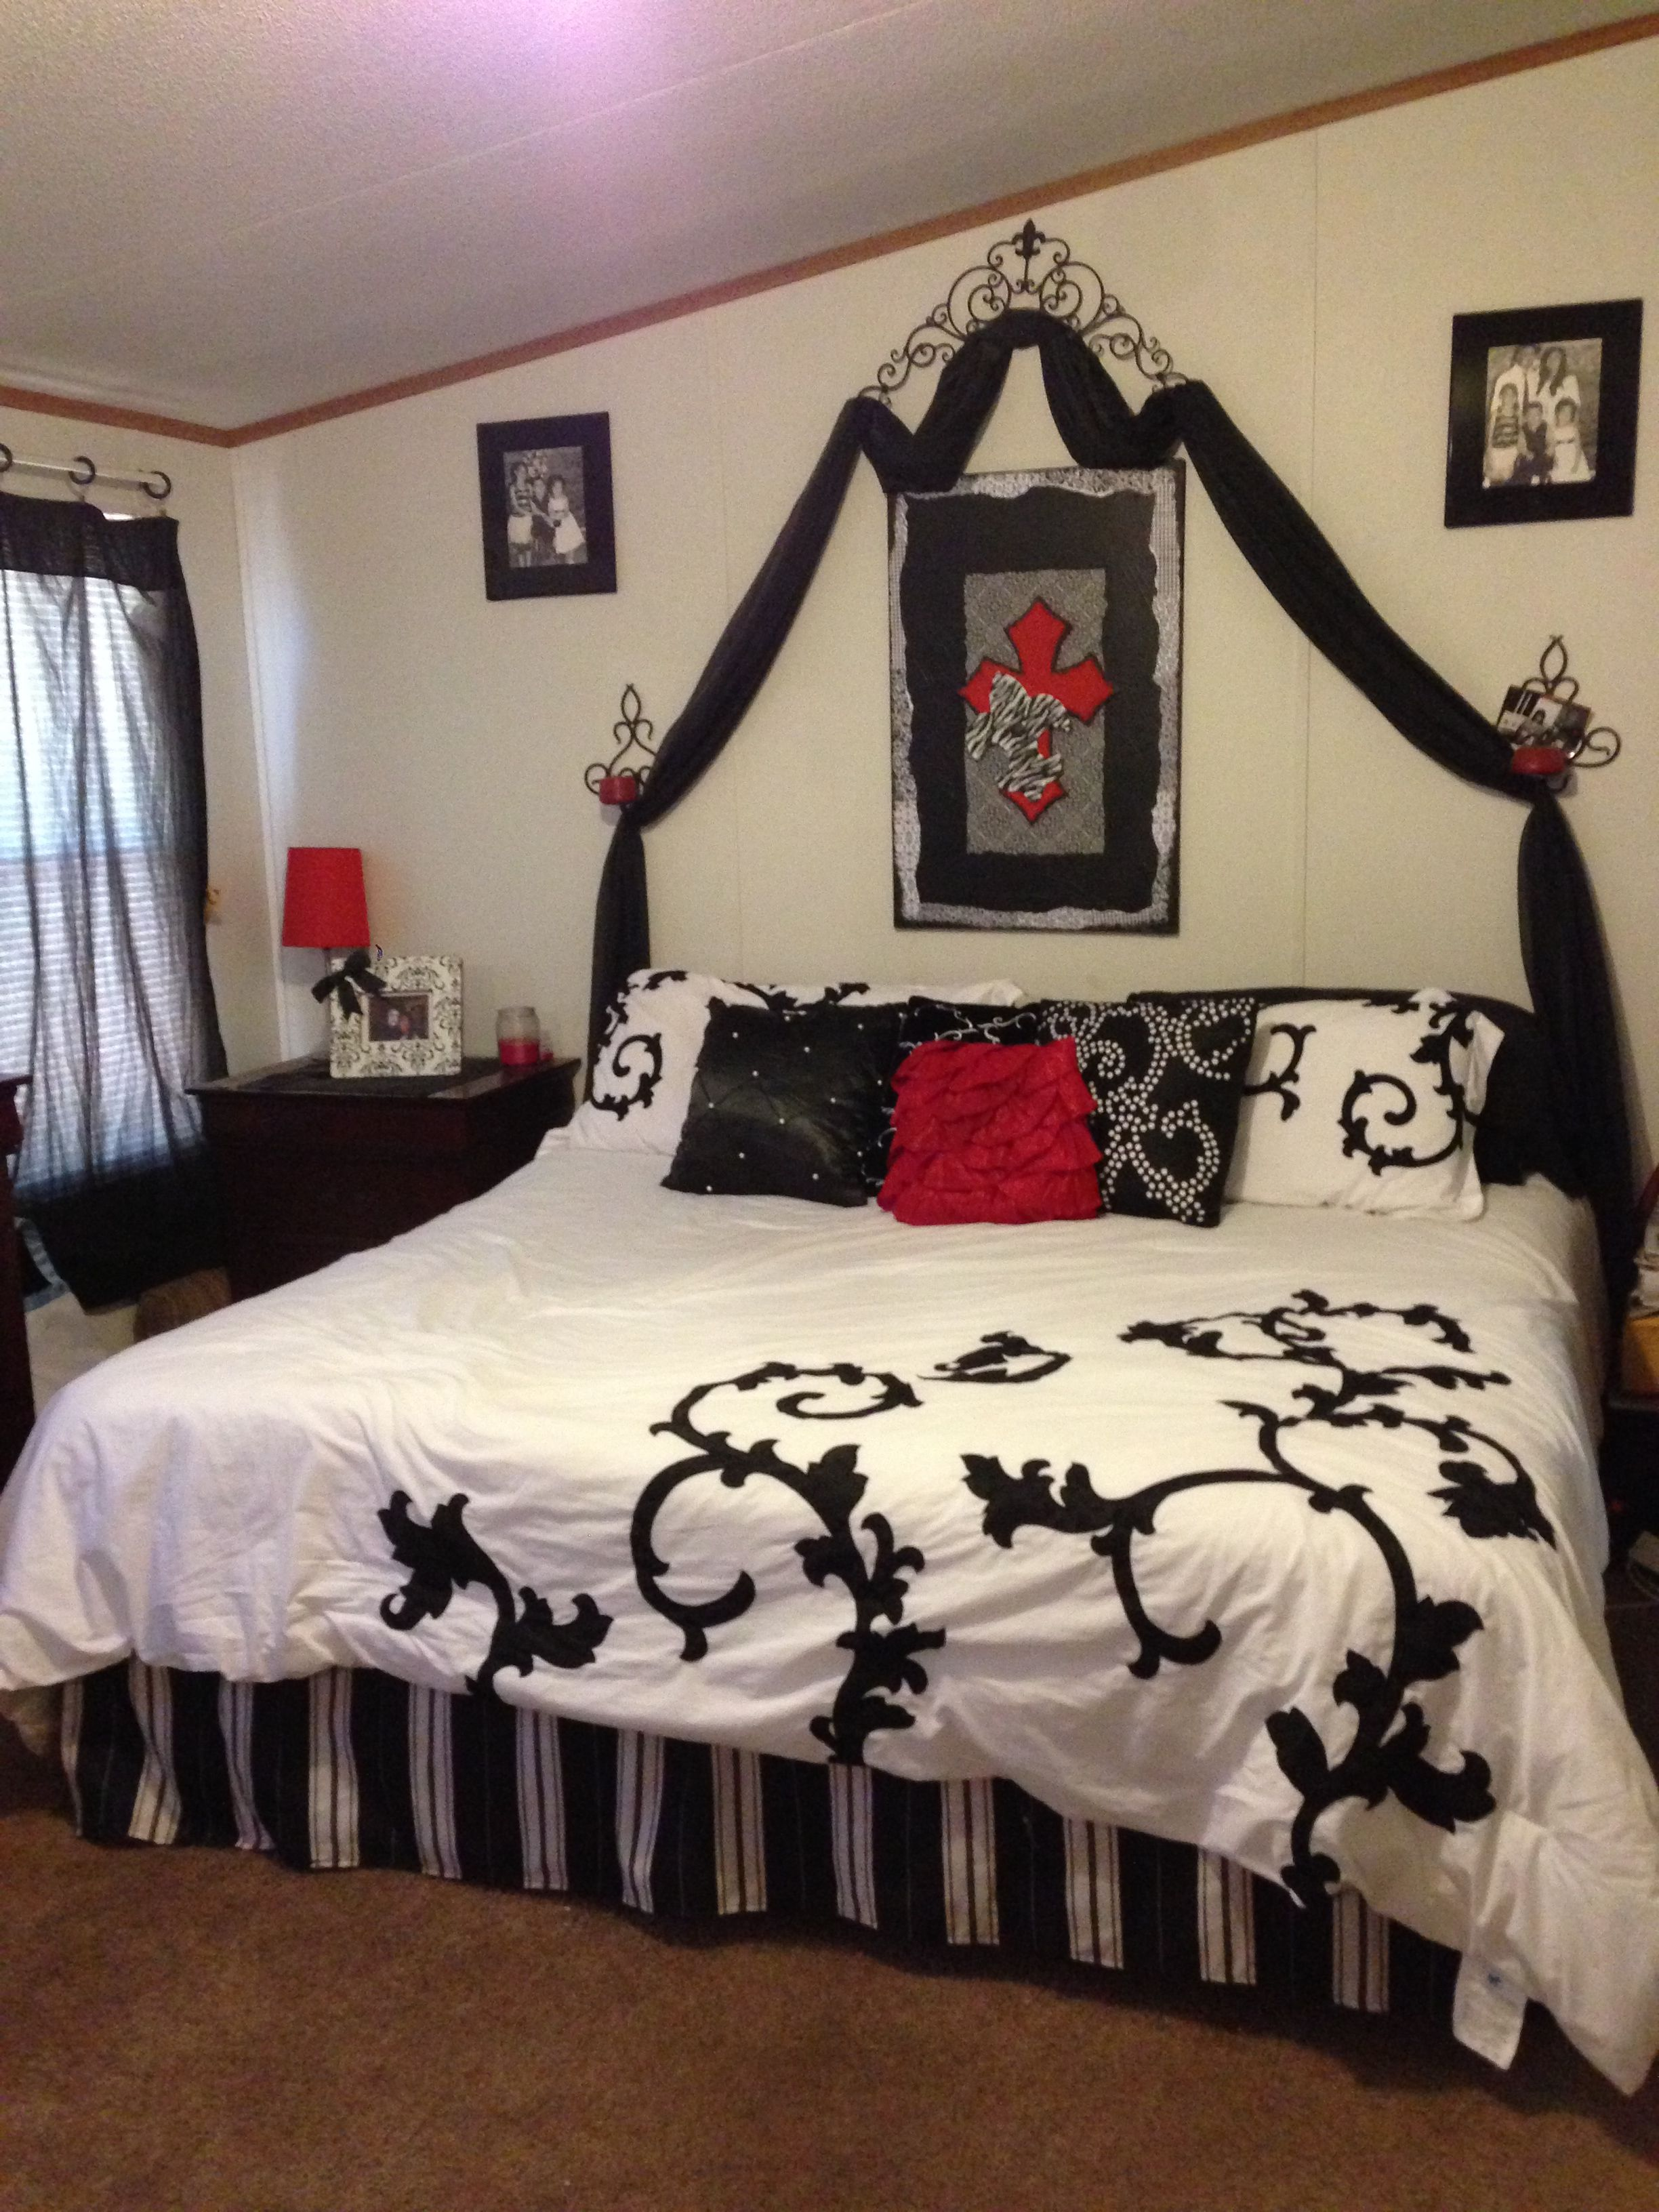 Pin By Julie Hirtzel On Black And White Rooms Bedroom Red Black White Bedrooms Red Bedroom Design